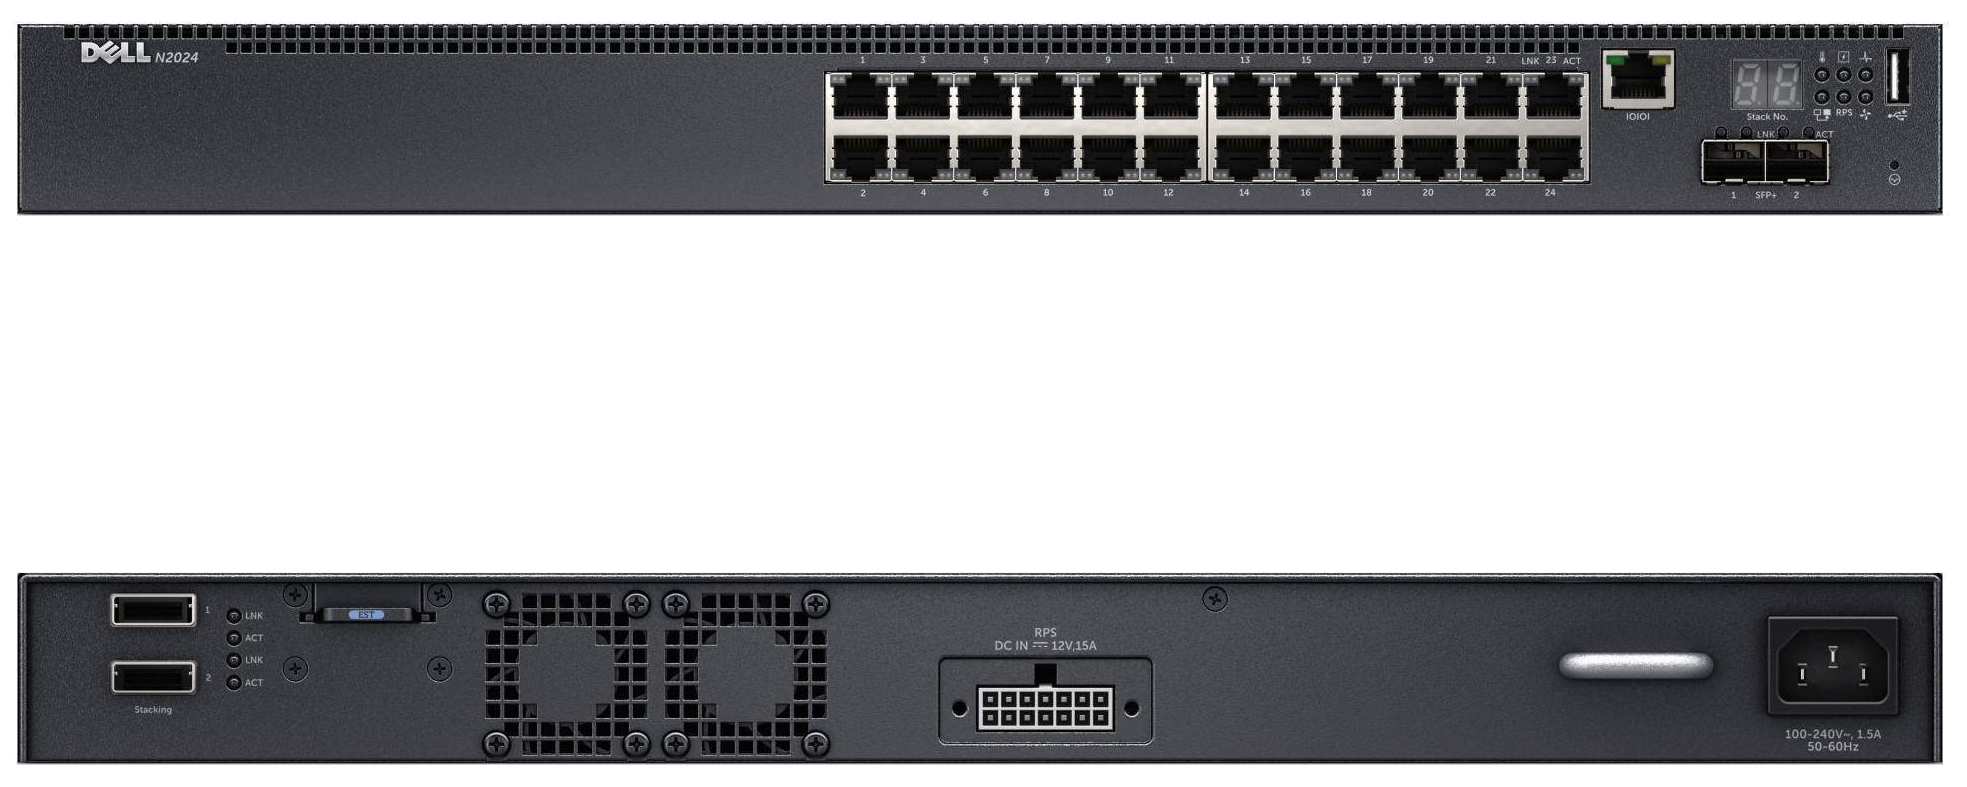 Dell Networking N2024, L2, 24x1GbE+2x10GbE SFP+fixed ports, Stacking